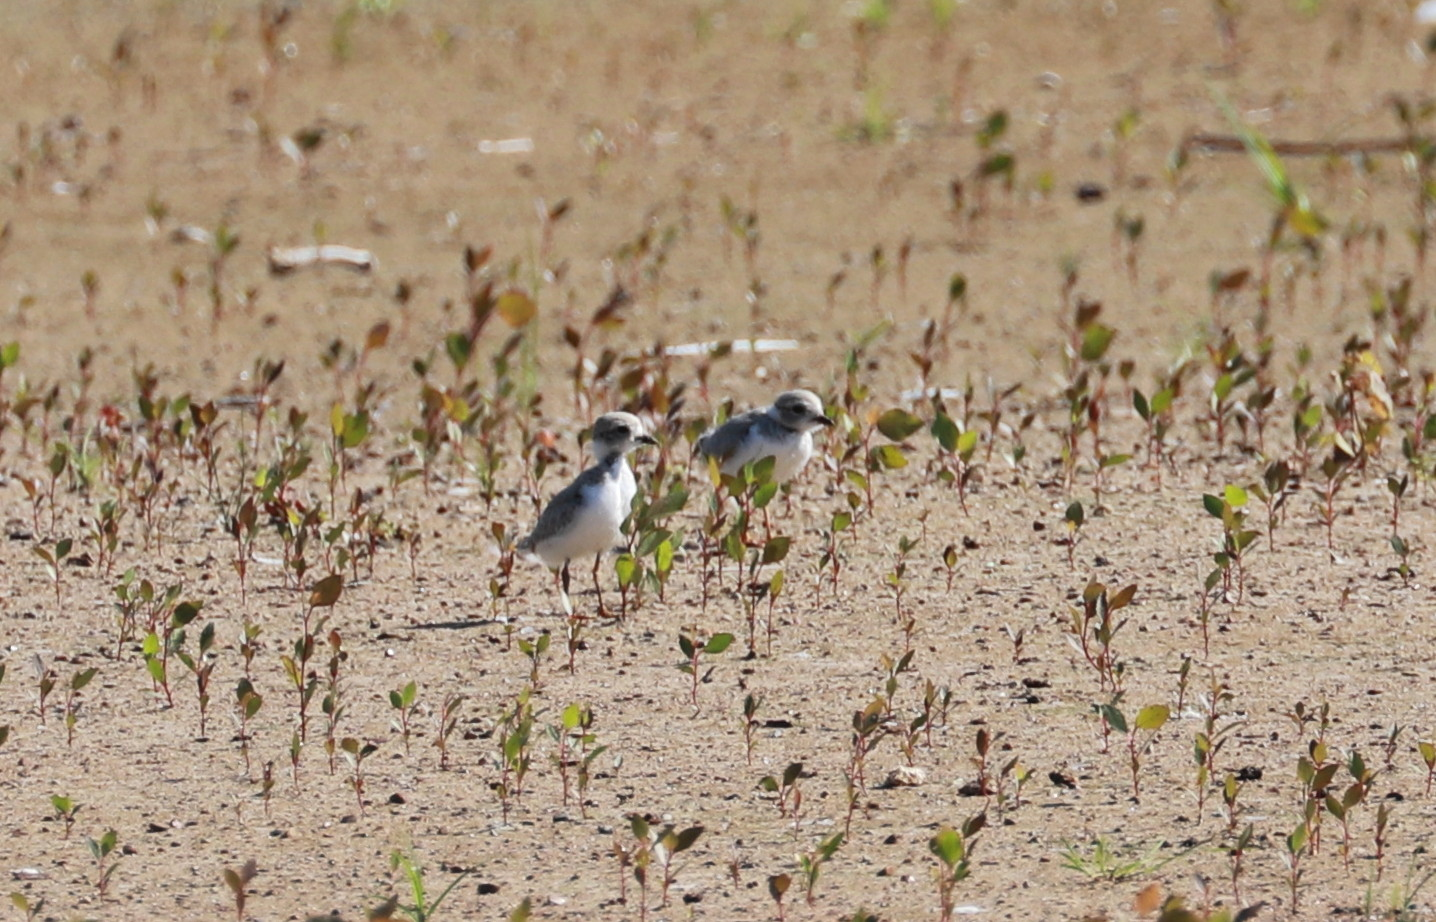 Piping Plover chicks 3 weeks old Aug. 8, 2019 3.jpg